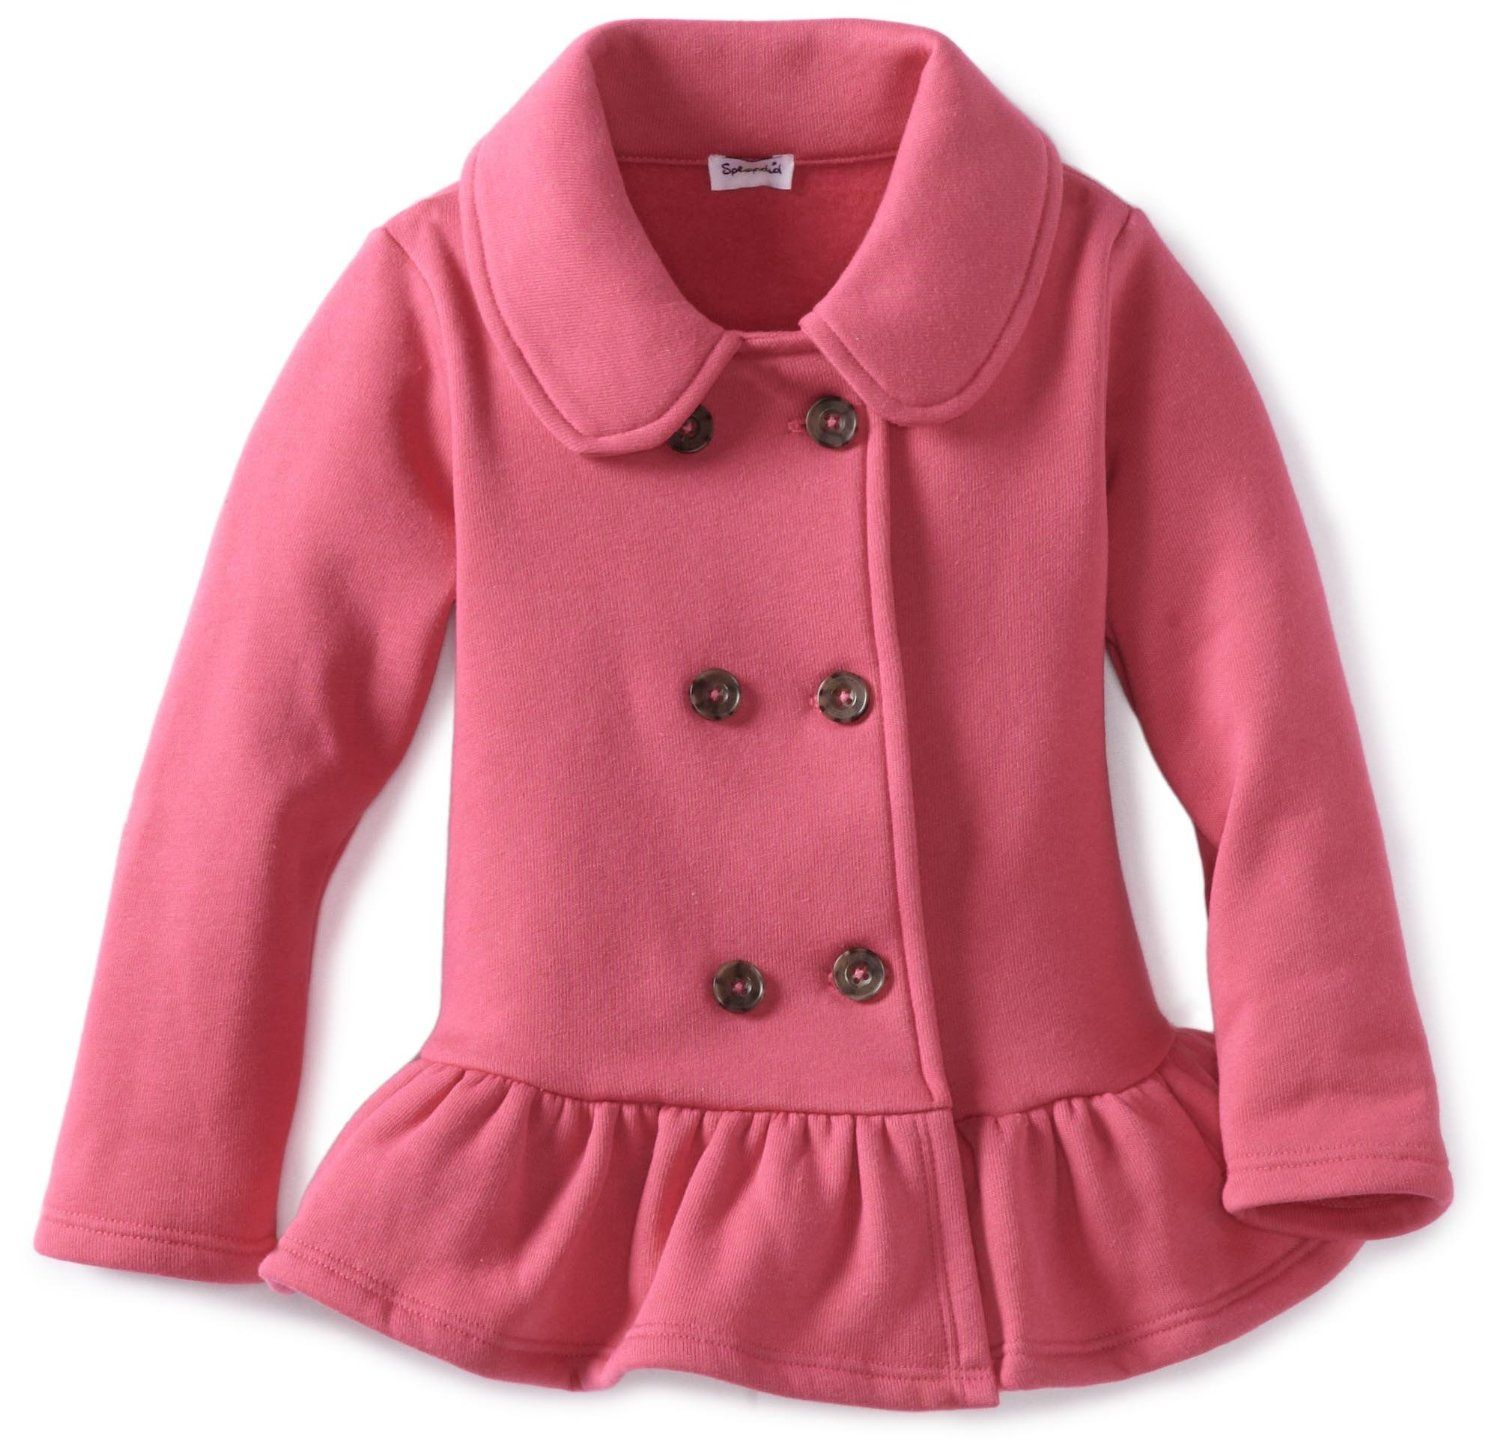 6a22d29eb pink winter coat girl - Google Search